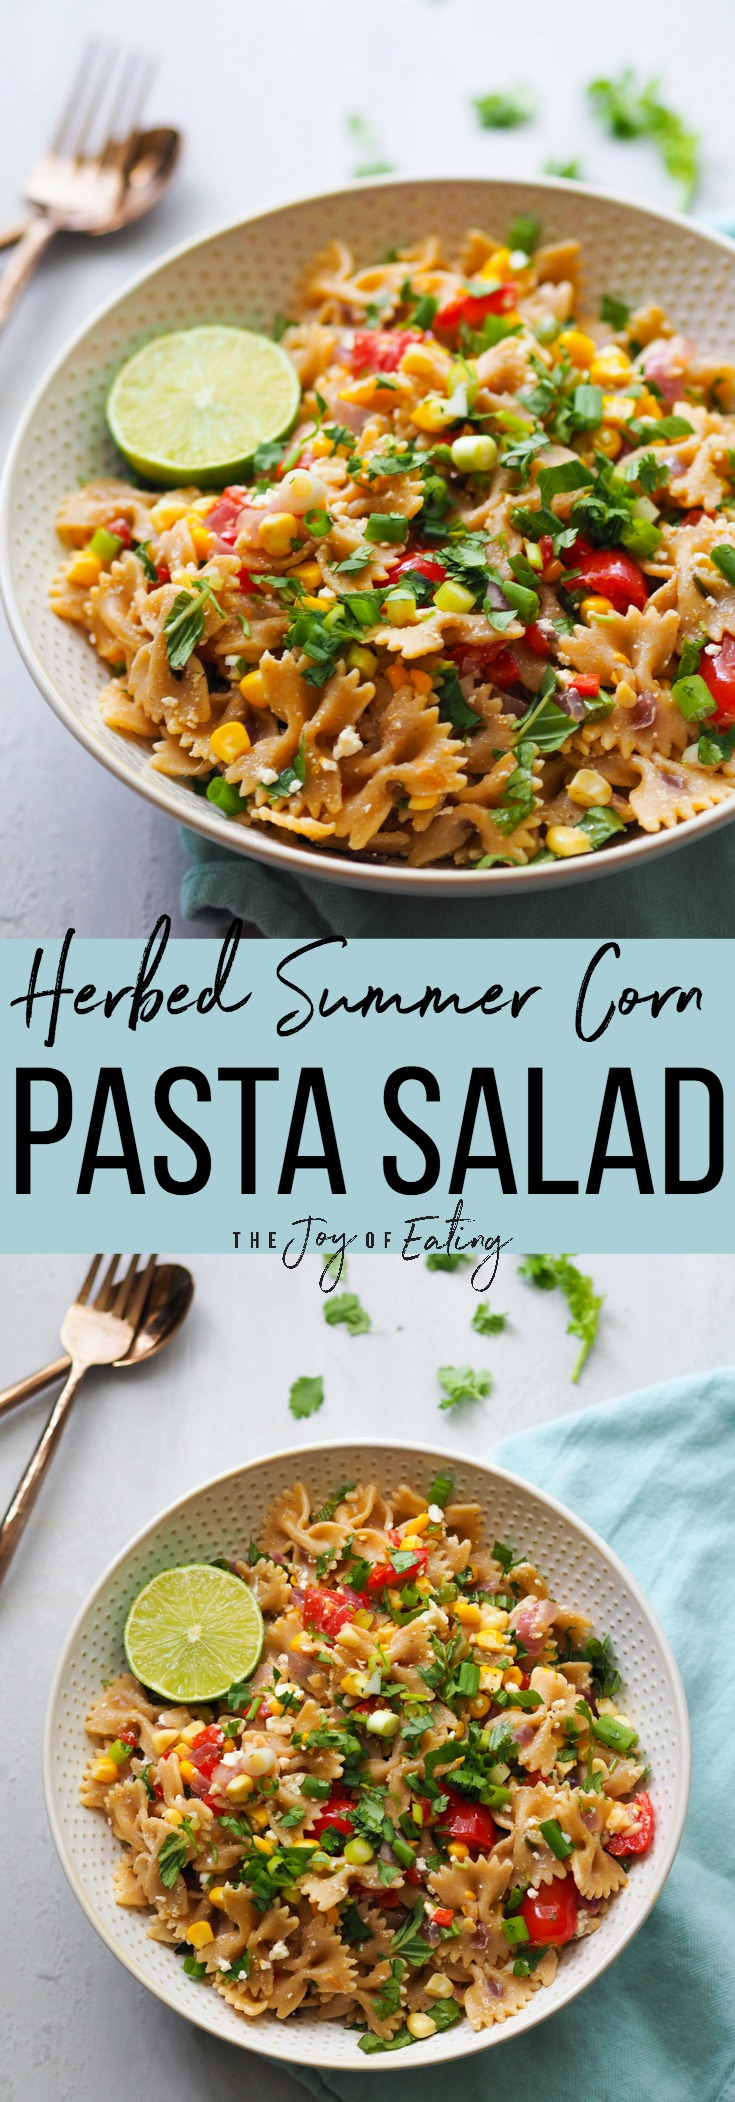 My favorite pasta salad for summer entertaining! Herbed summer corn pasta salad is made with sweet summer corn, sauteed until crisp-tender, red peppers, briny feta and tons of herbs! #pastasalad #tailgating #entertaining #corn #summer #barbecue #sidedish #salad #vegetarian